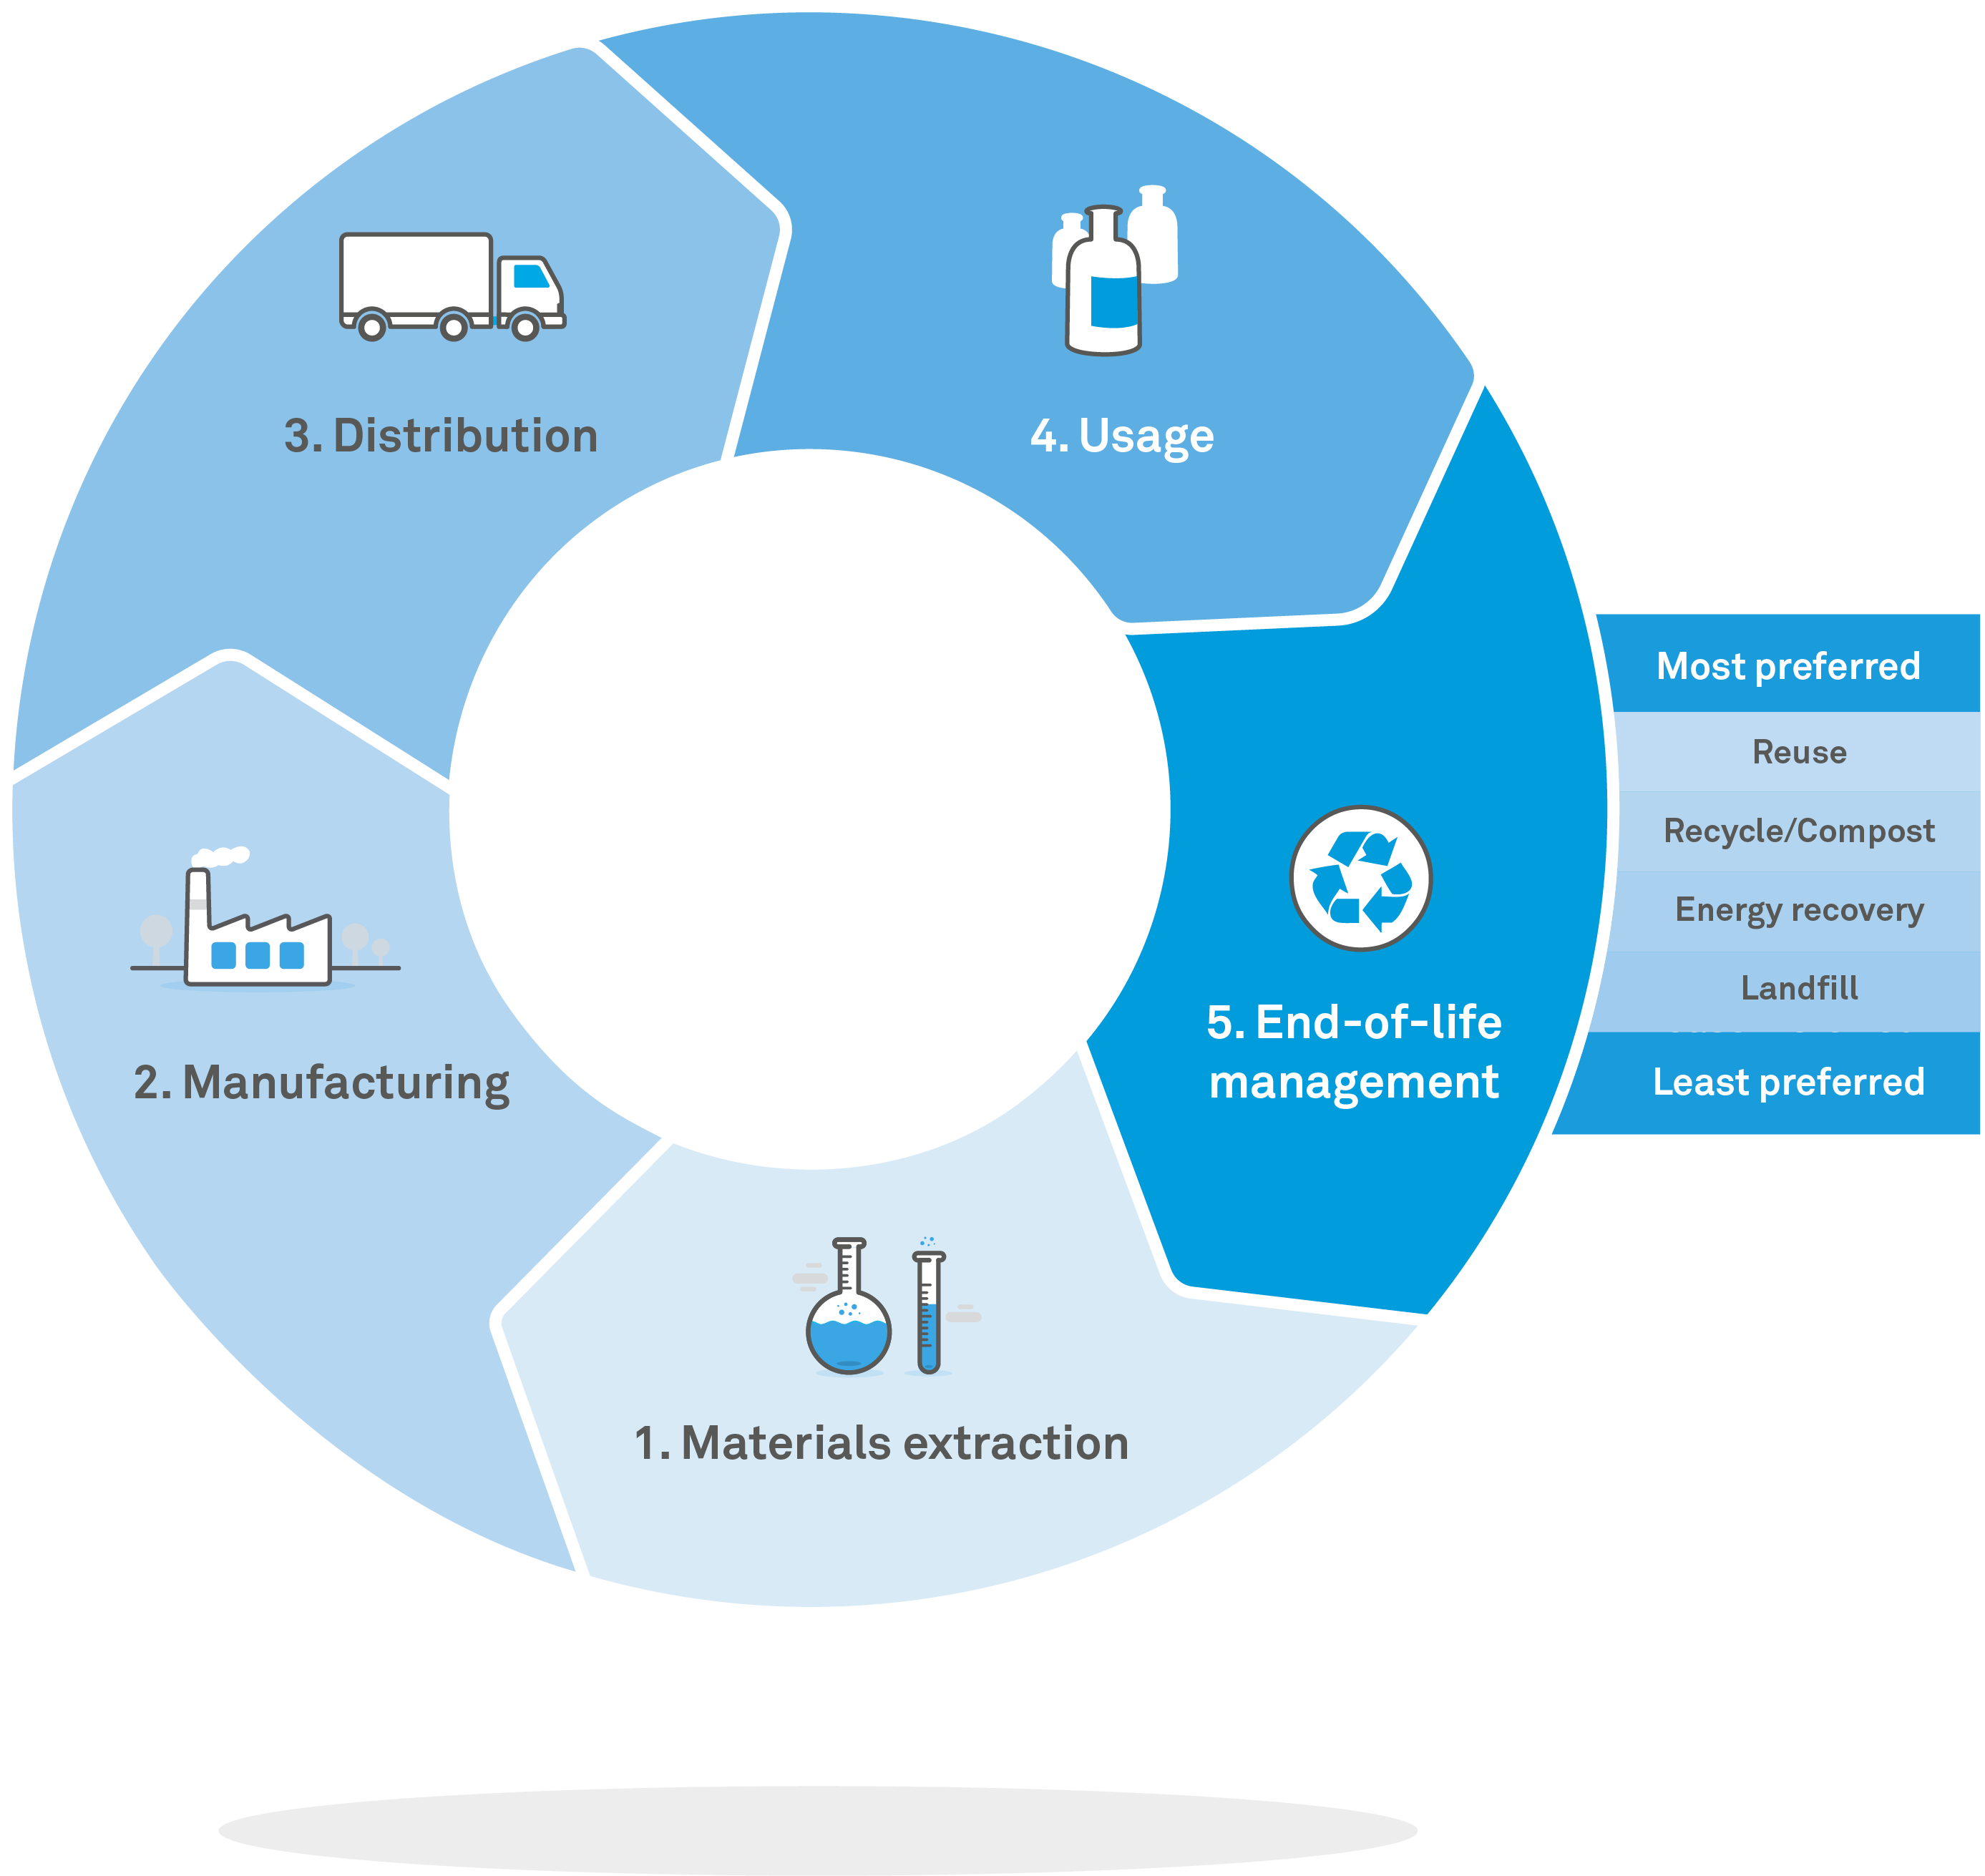 Stahl product lifecycle